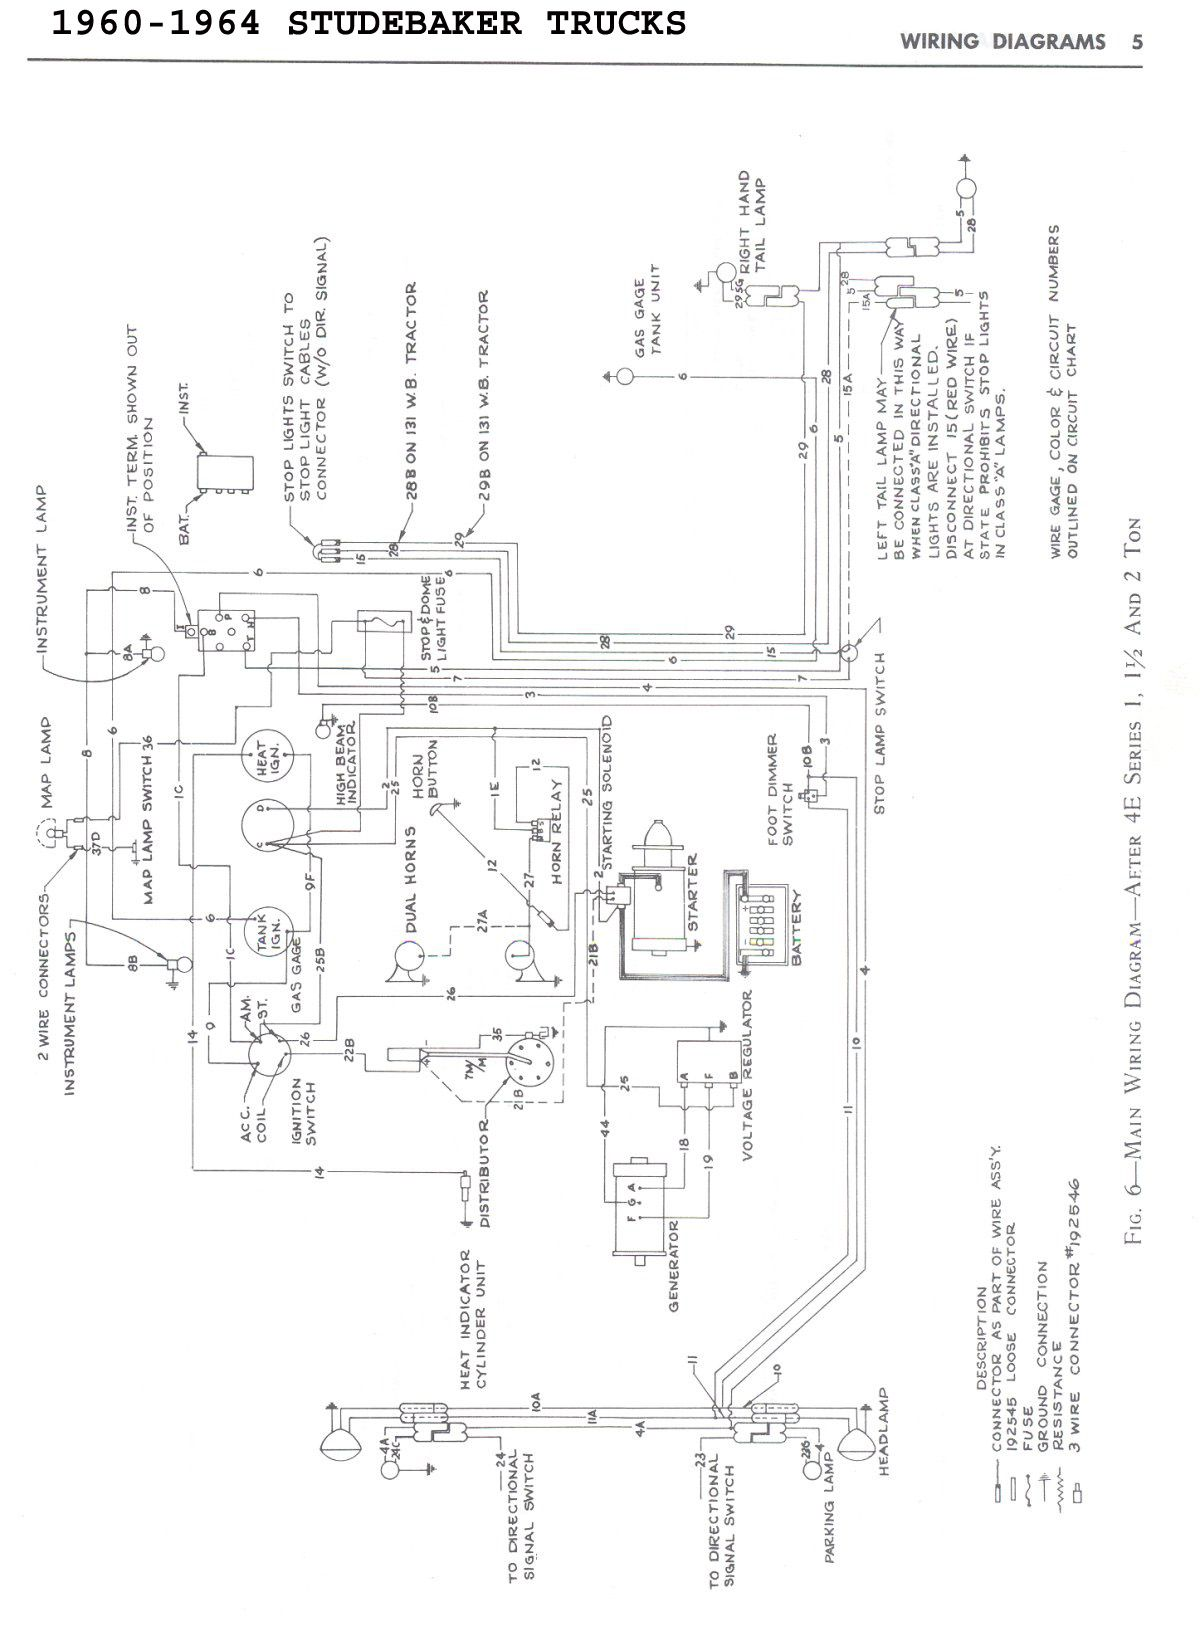 Marmon Truck Wiring Diagrams Free Download Studebaker Transtar Trusted 89 Chevy Diagram At